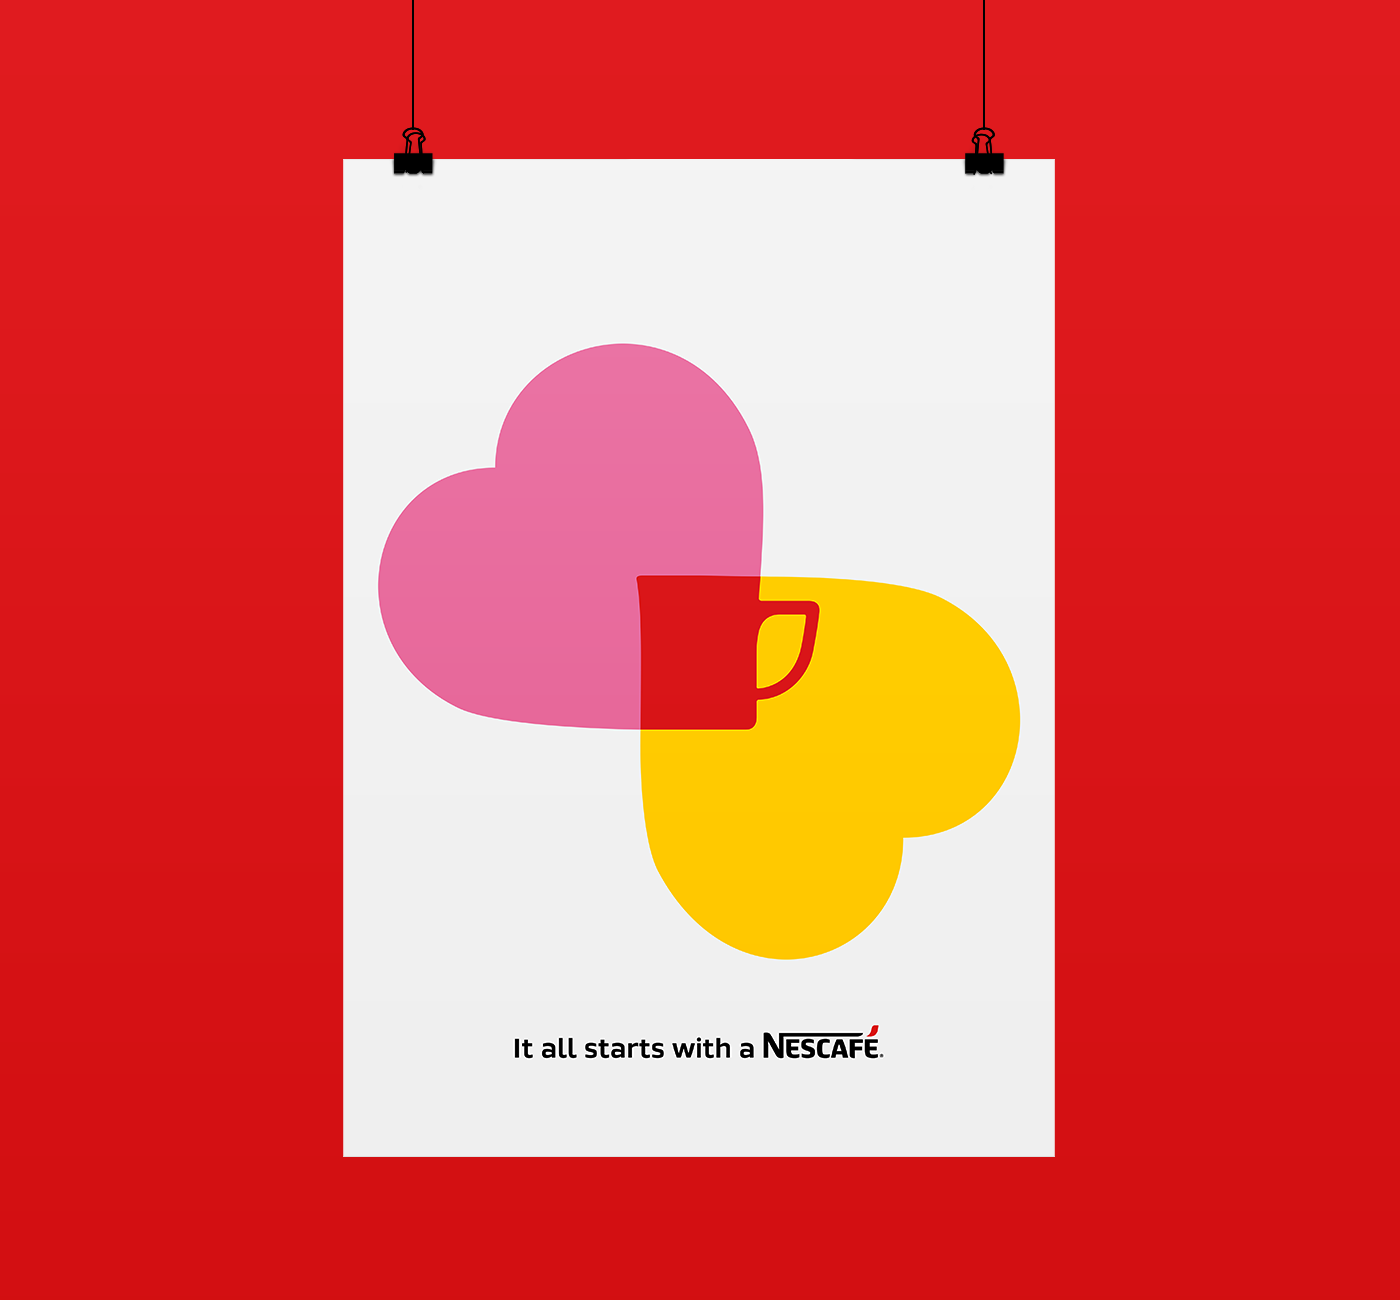 illustration_andre_levy_zhion_vector_flat_minimal_conceptual_nescafe_red_mug_campaign_launch_social_media_content_start_love_poster.png